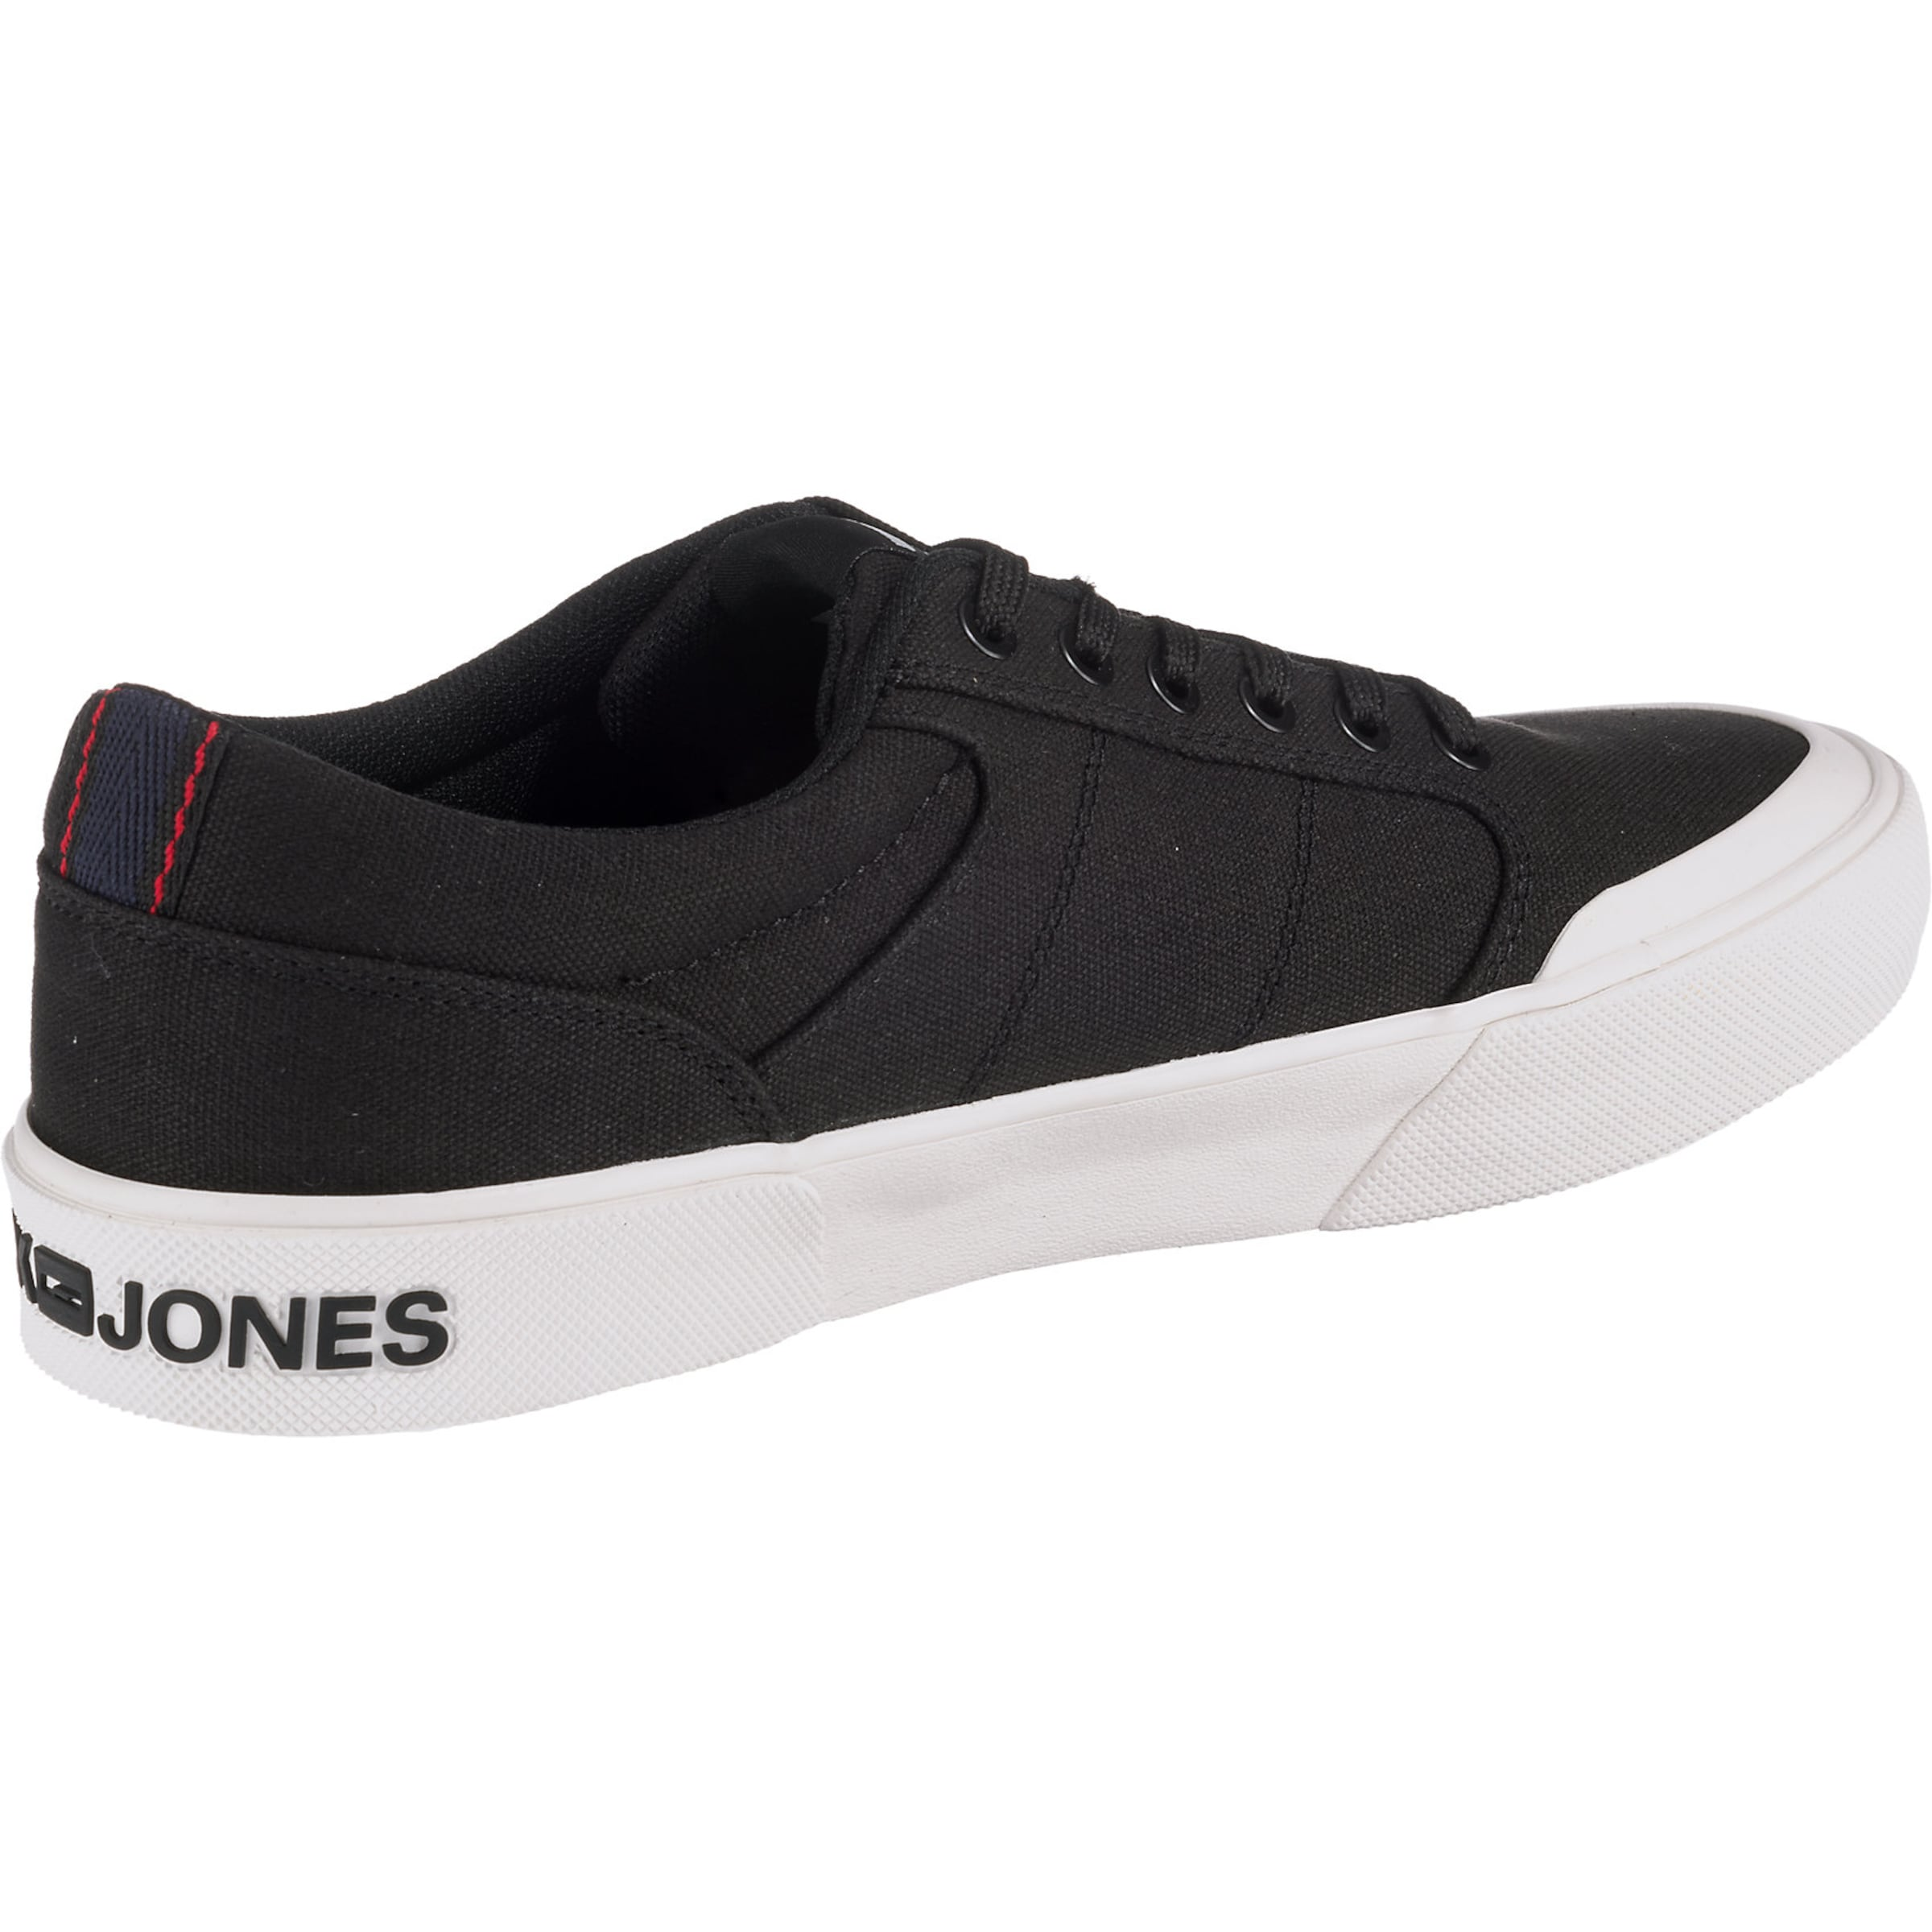 NoirBlanc Jones Jackamp; Basses Baskets En 4c35RLAjq